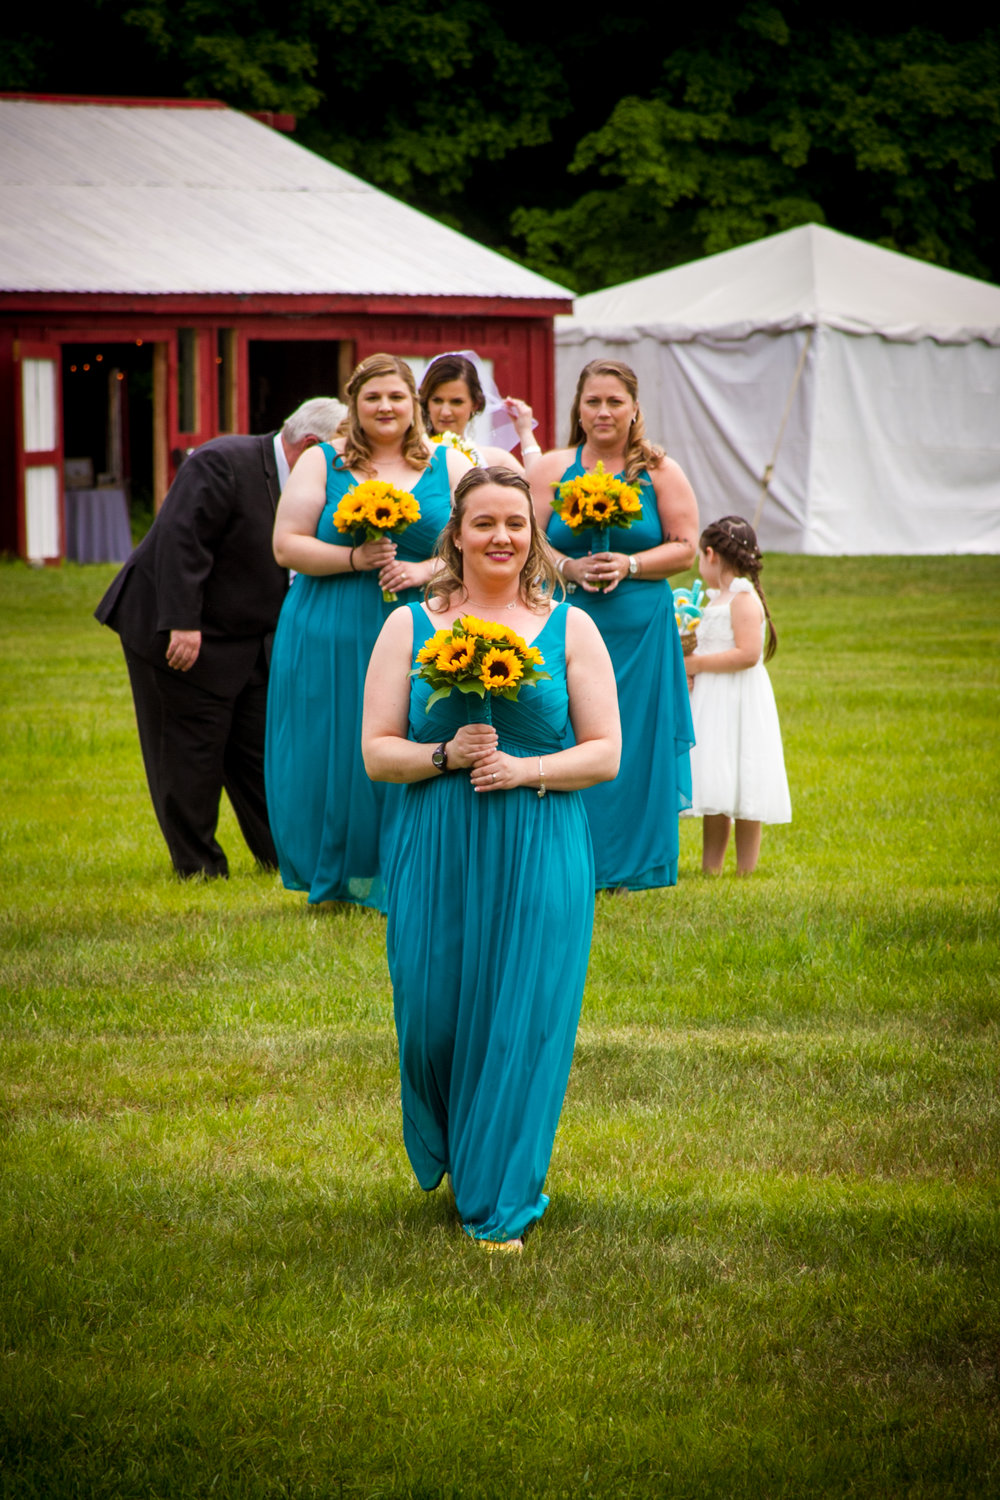 The bridesmaids begin their walk down the aisle.  The Bride is waiting in the back to begin her entrance.